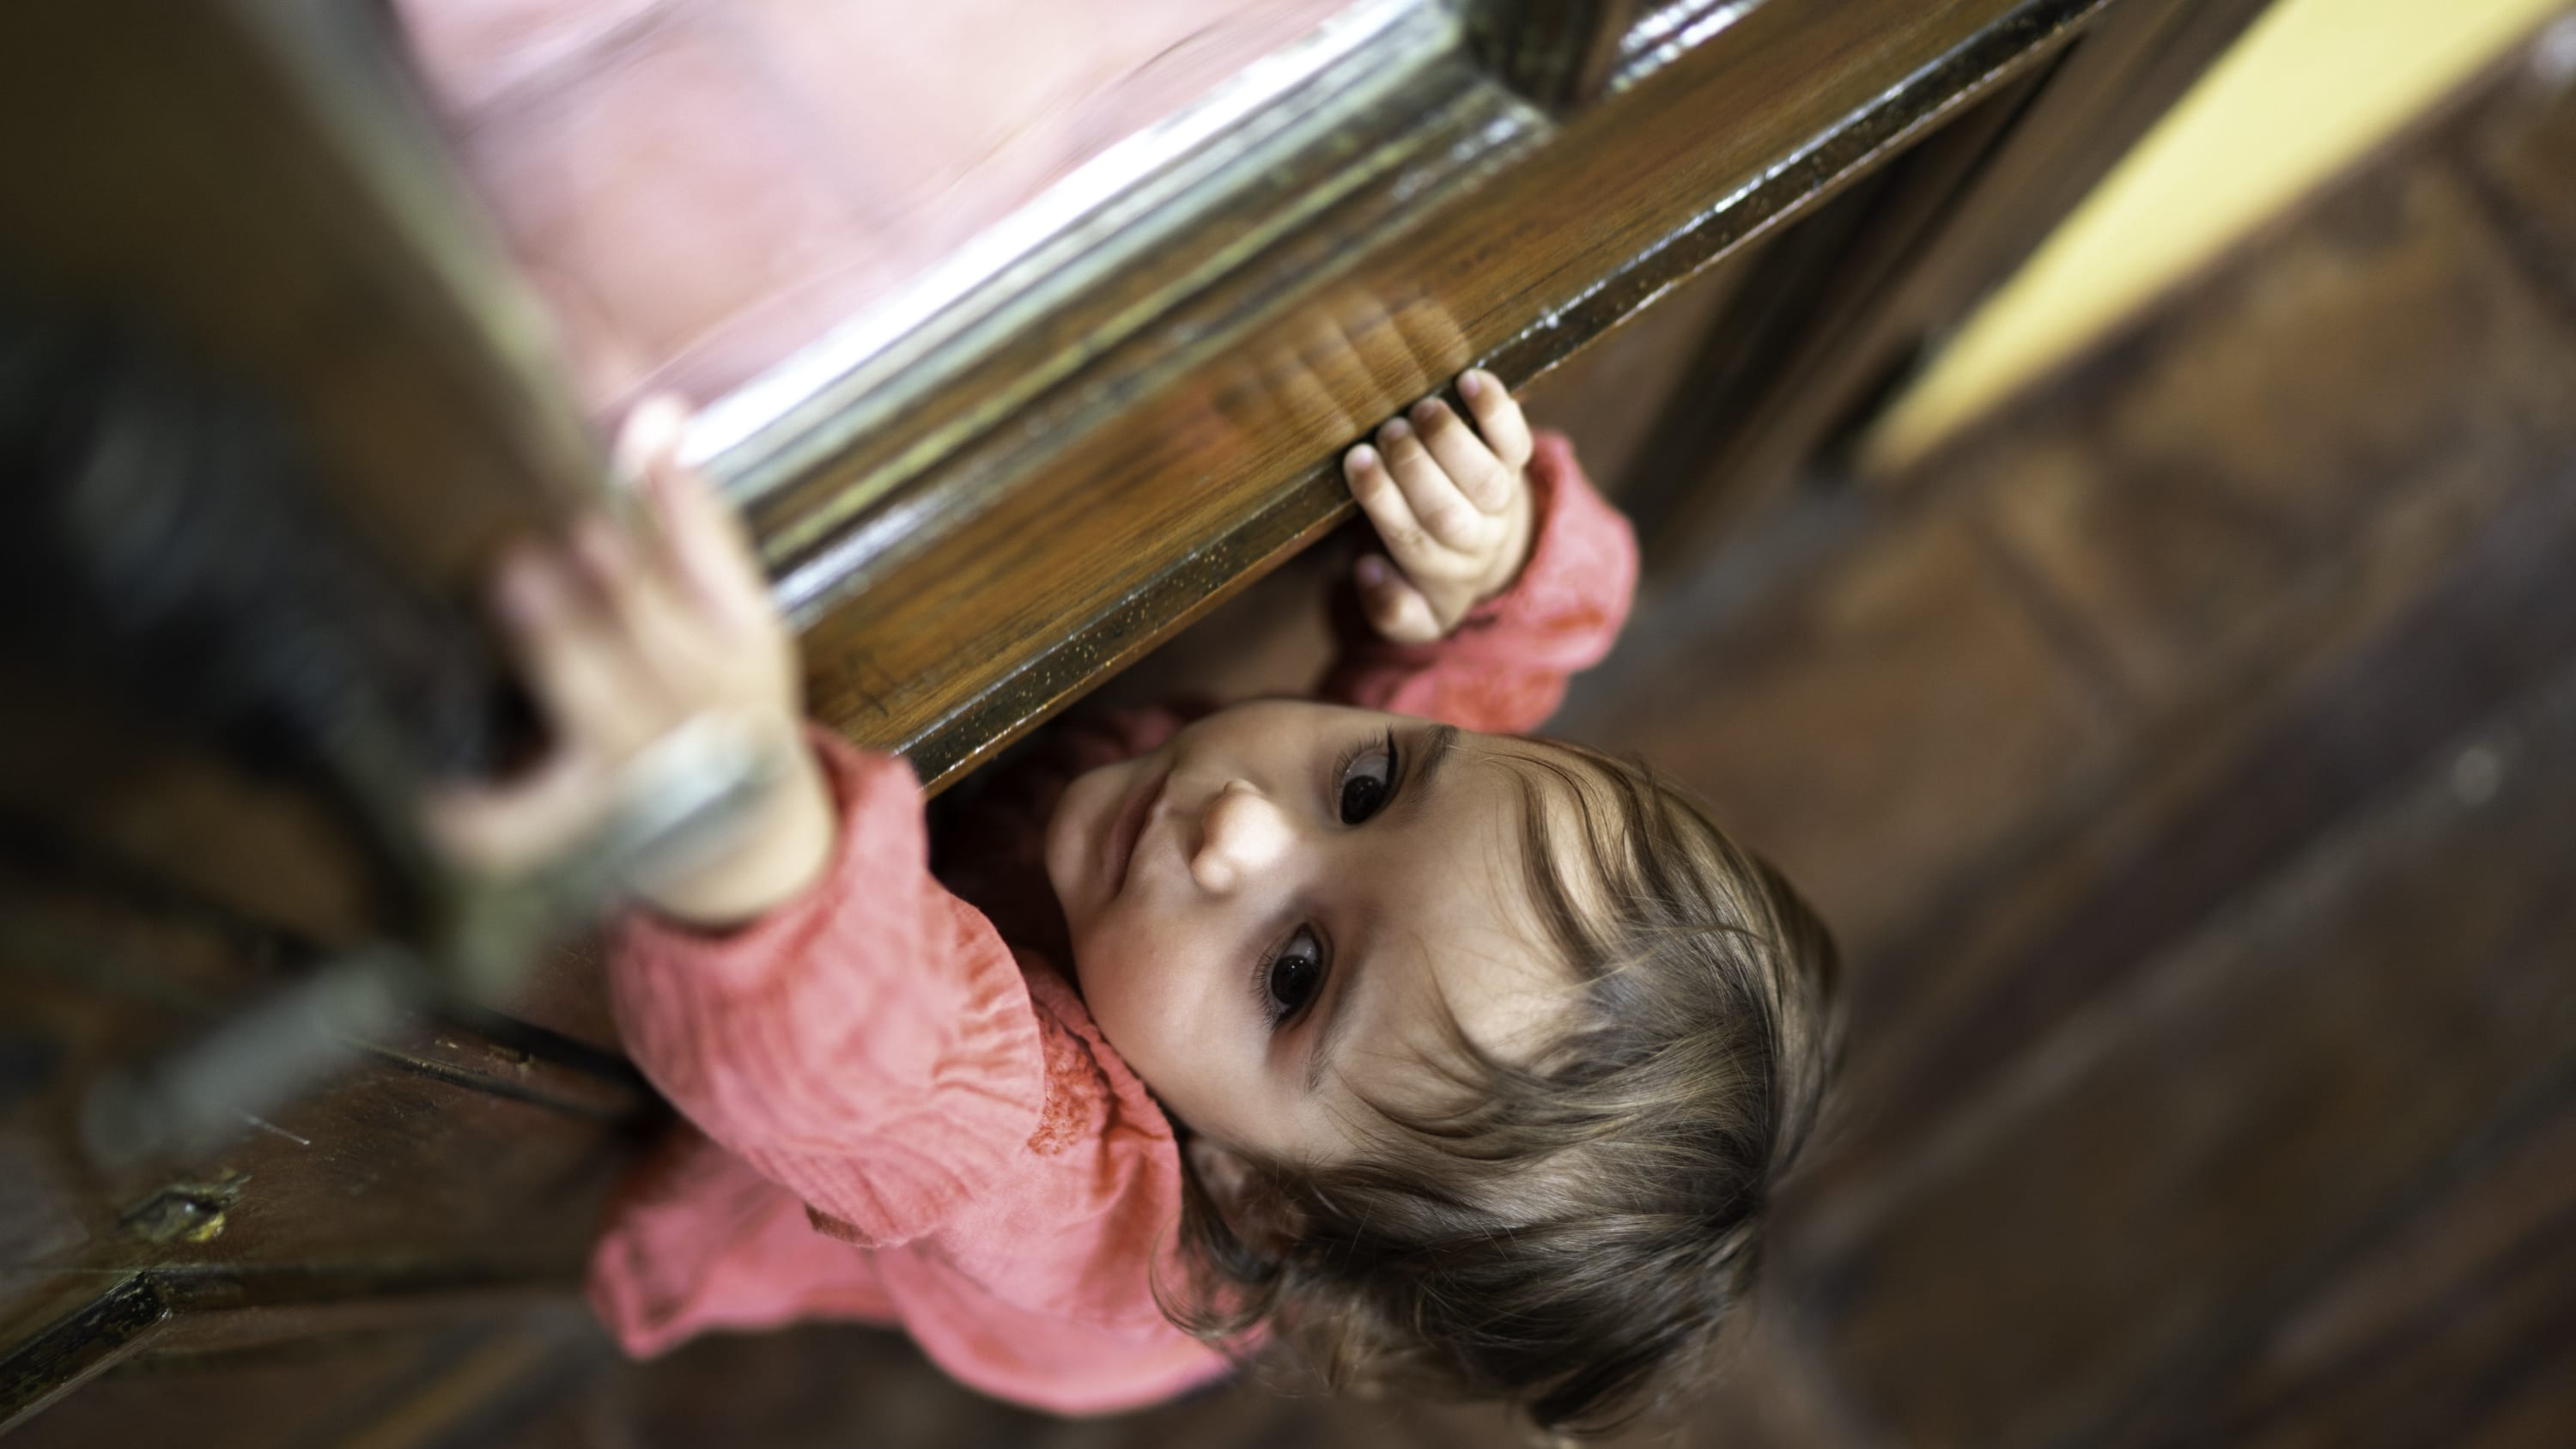 child climbing up cabinet, possibly needing to go to the ED during COVID-19